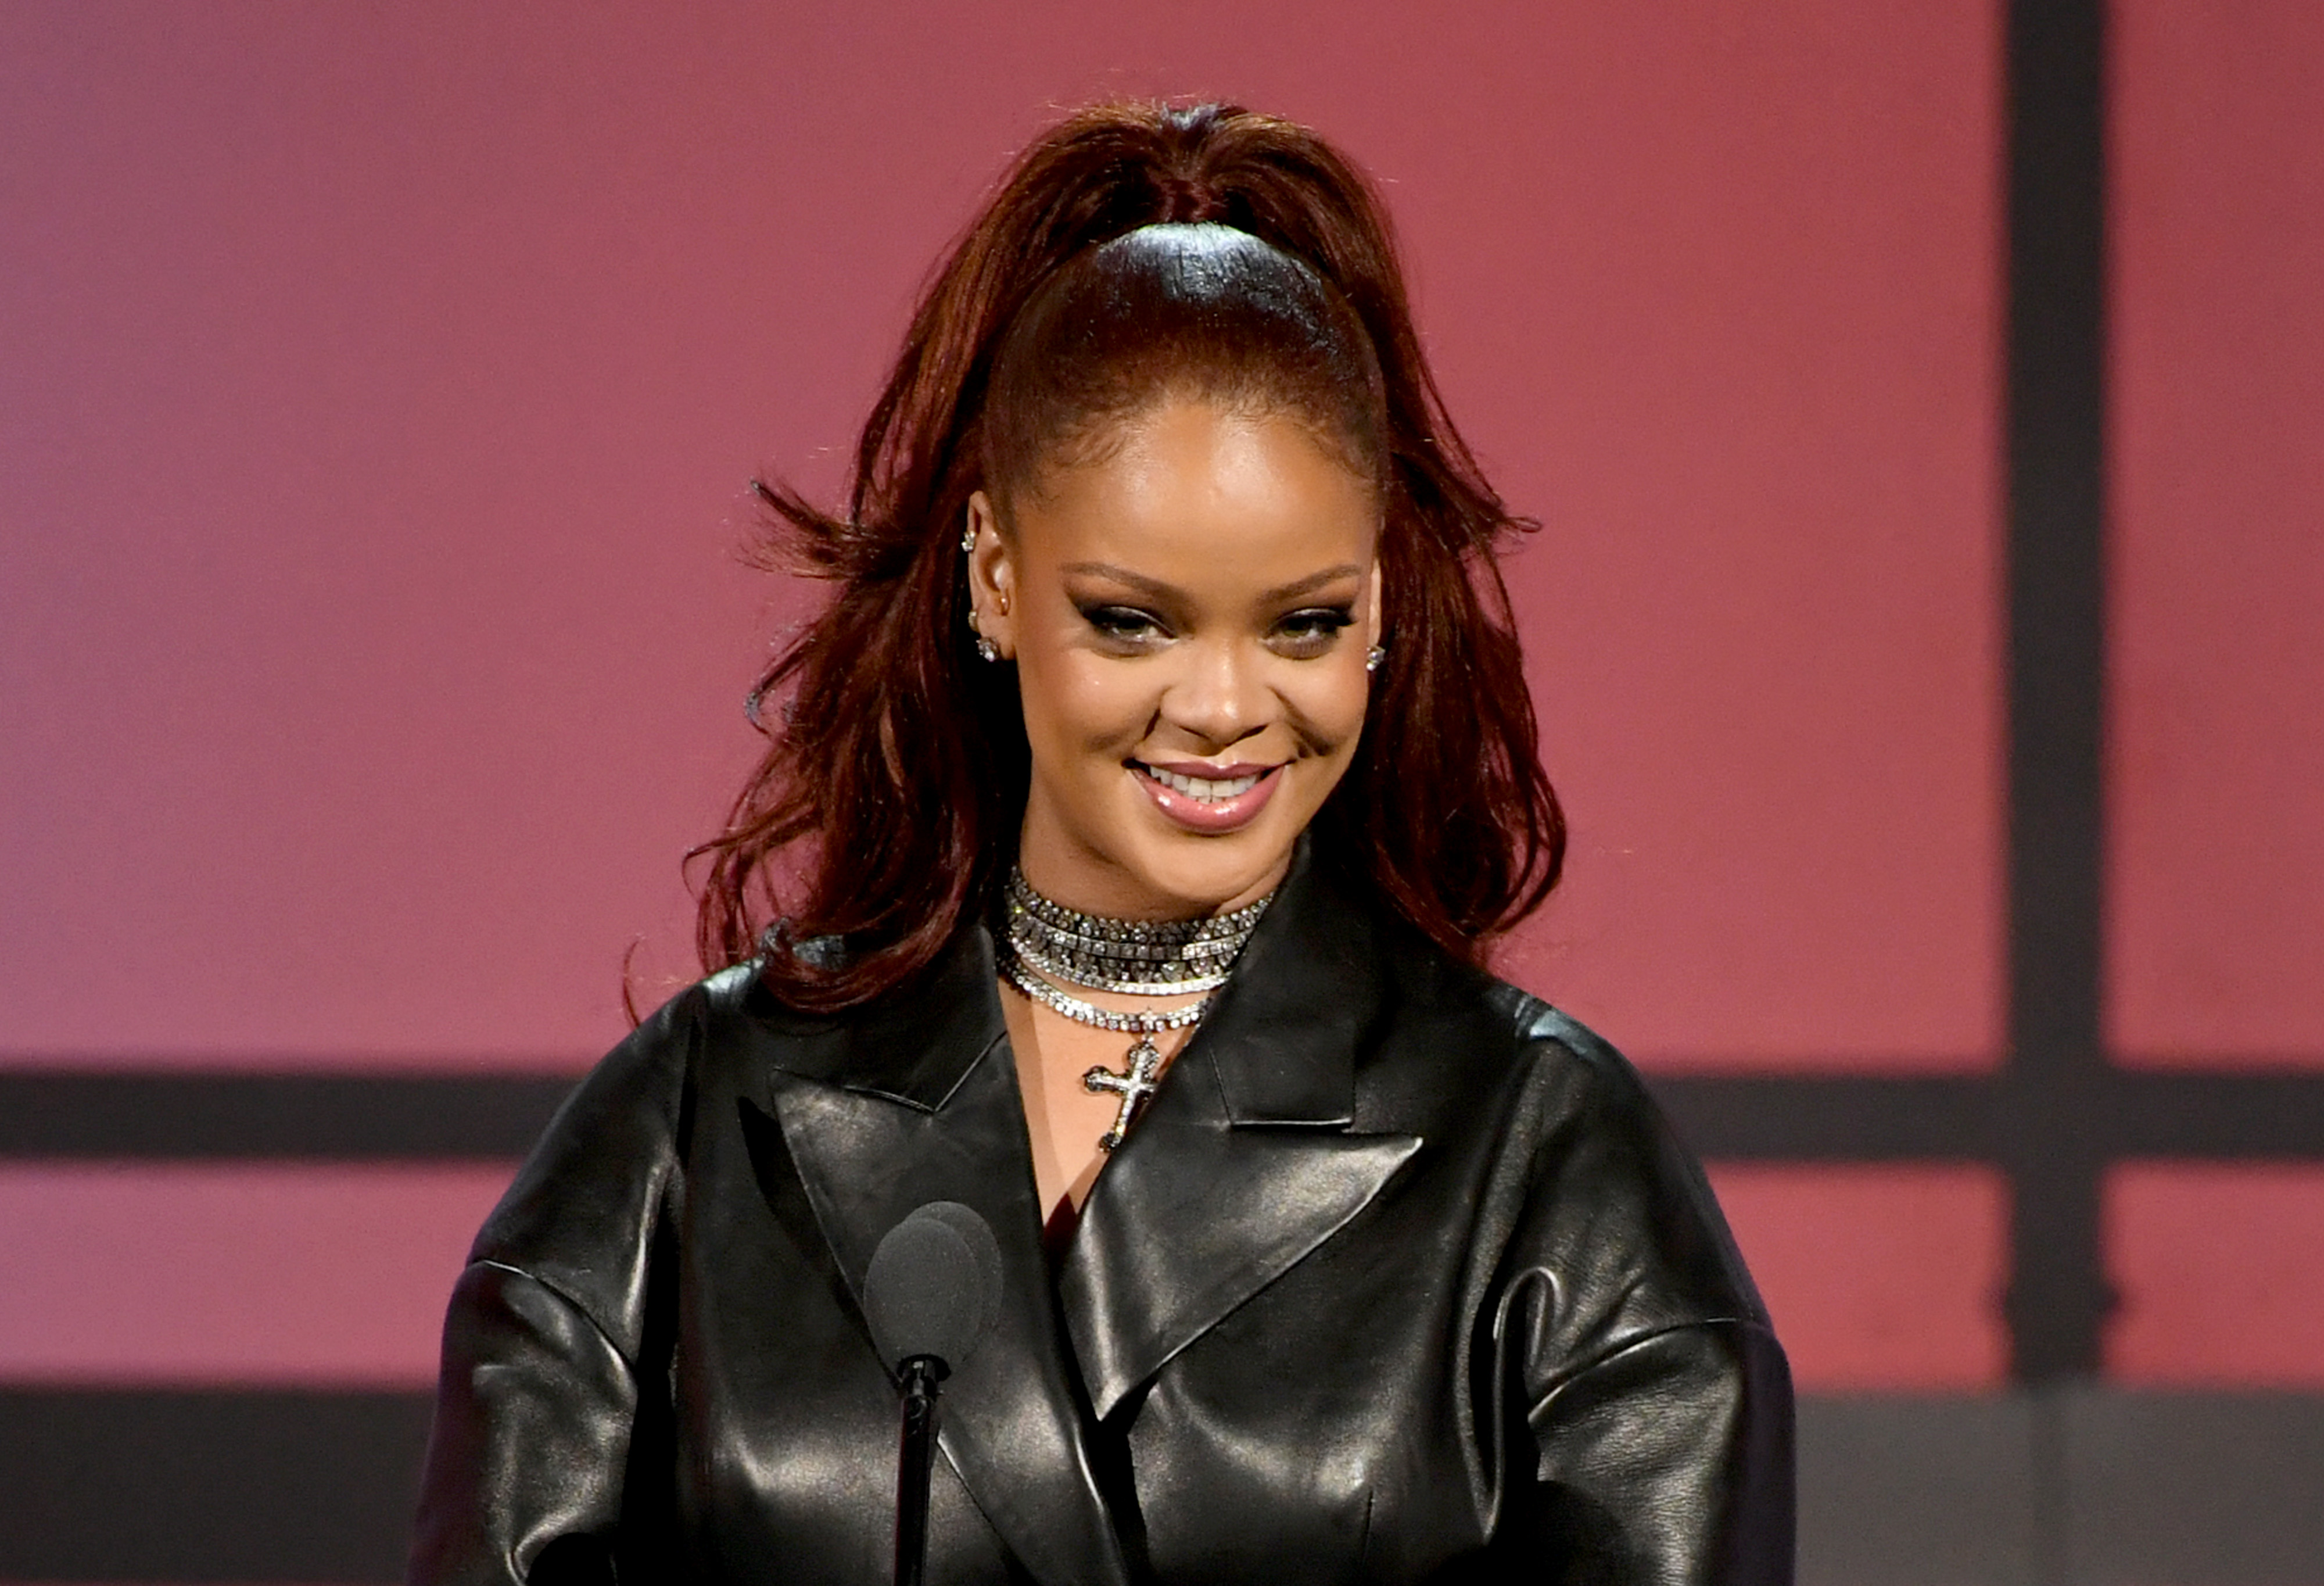 Rihanna speaks onstage at the 2019 BET Awards in Los Angeles, California on June 23, 2019.